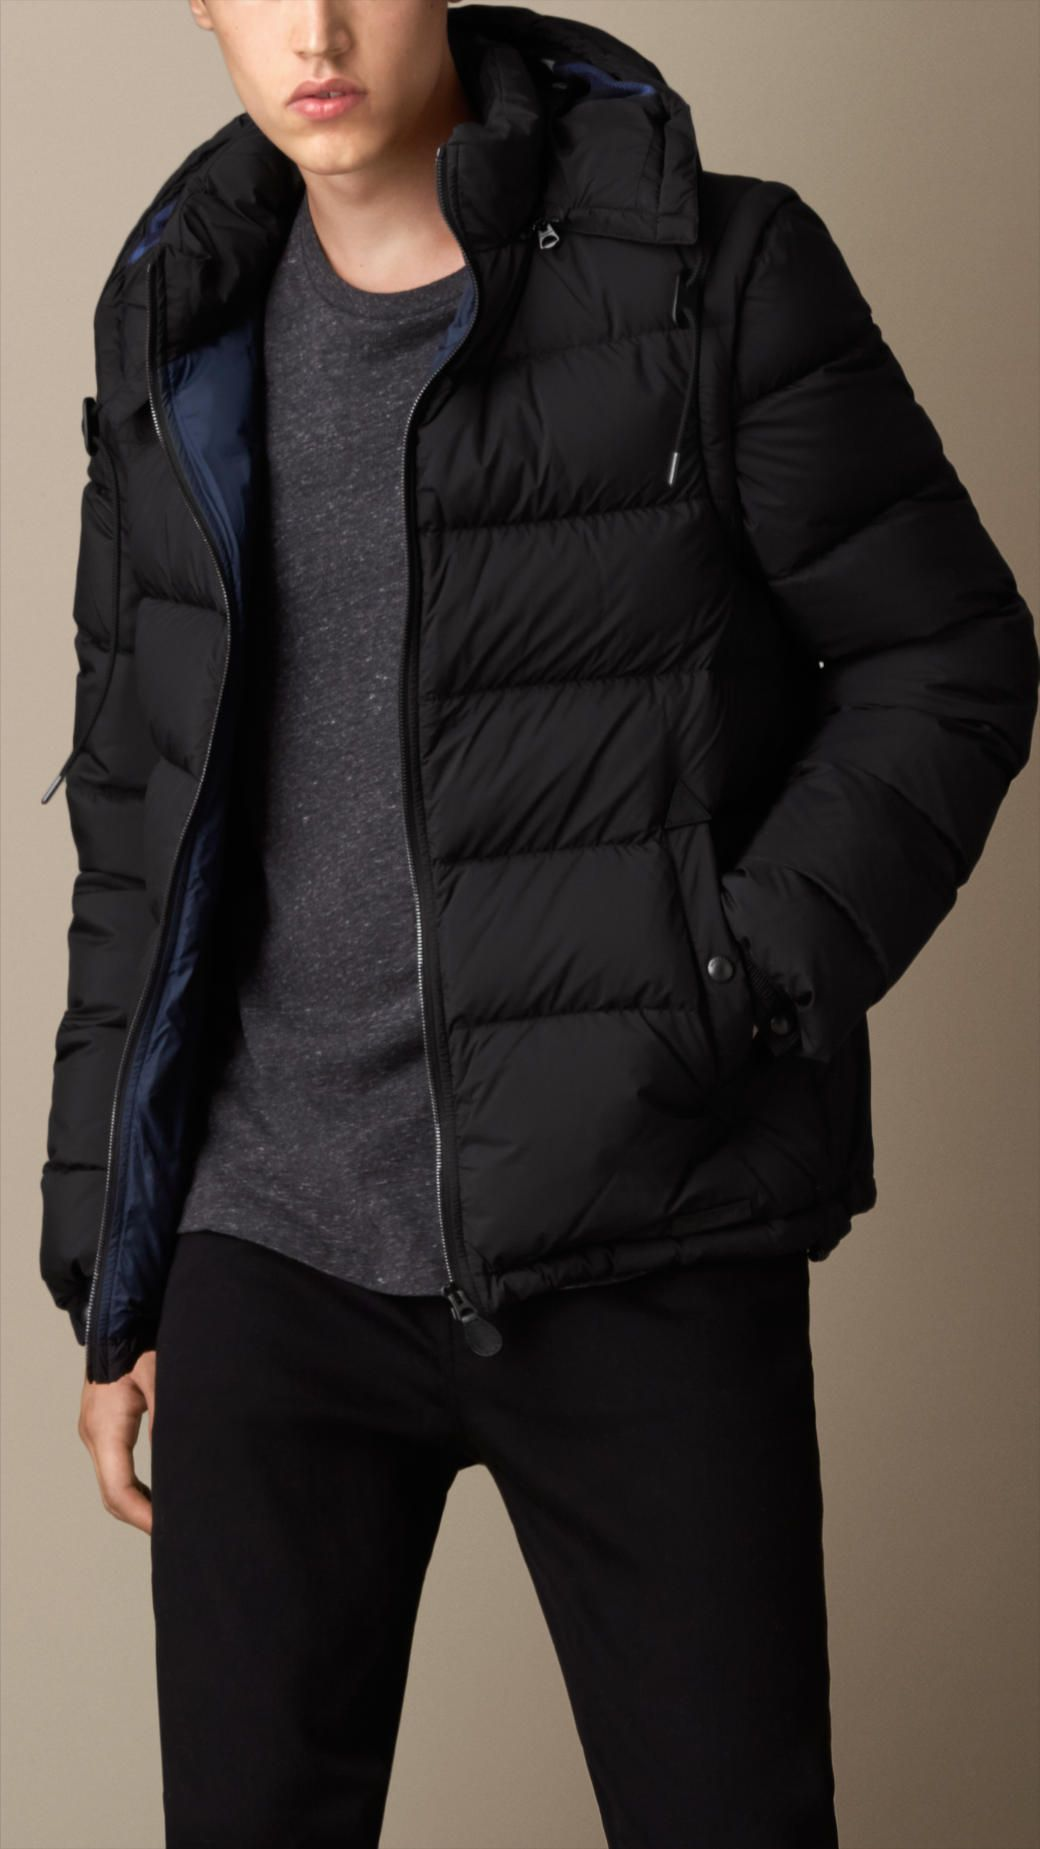 c500004ad616 Puffer Jacket with Removable Sleeves